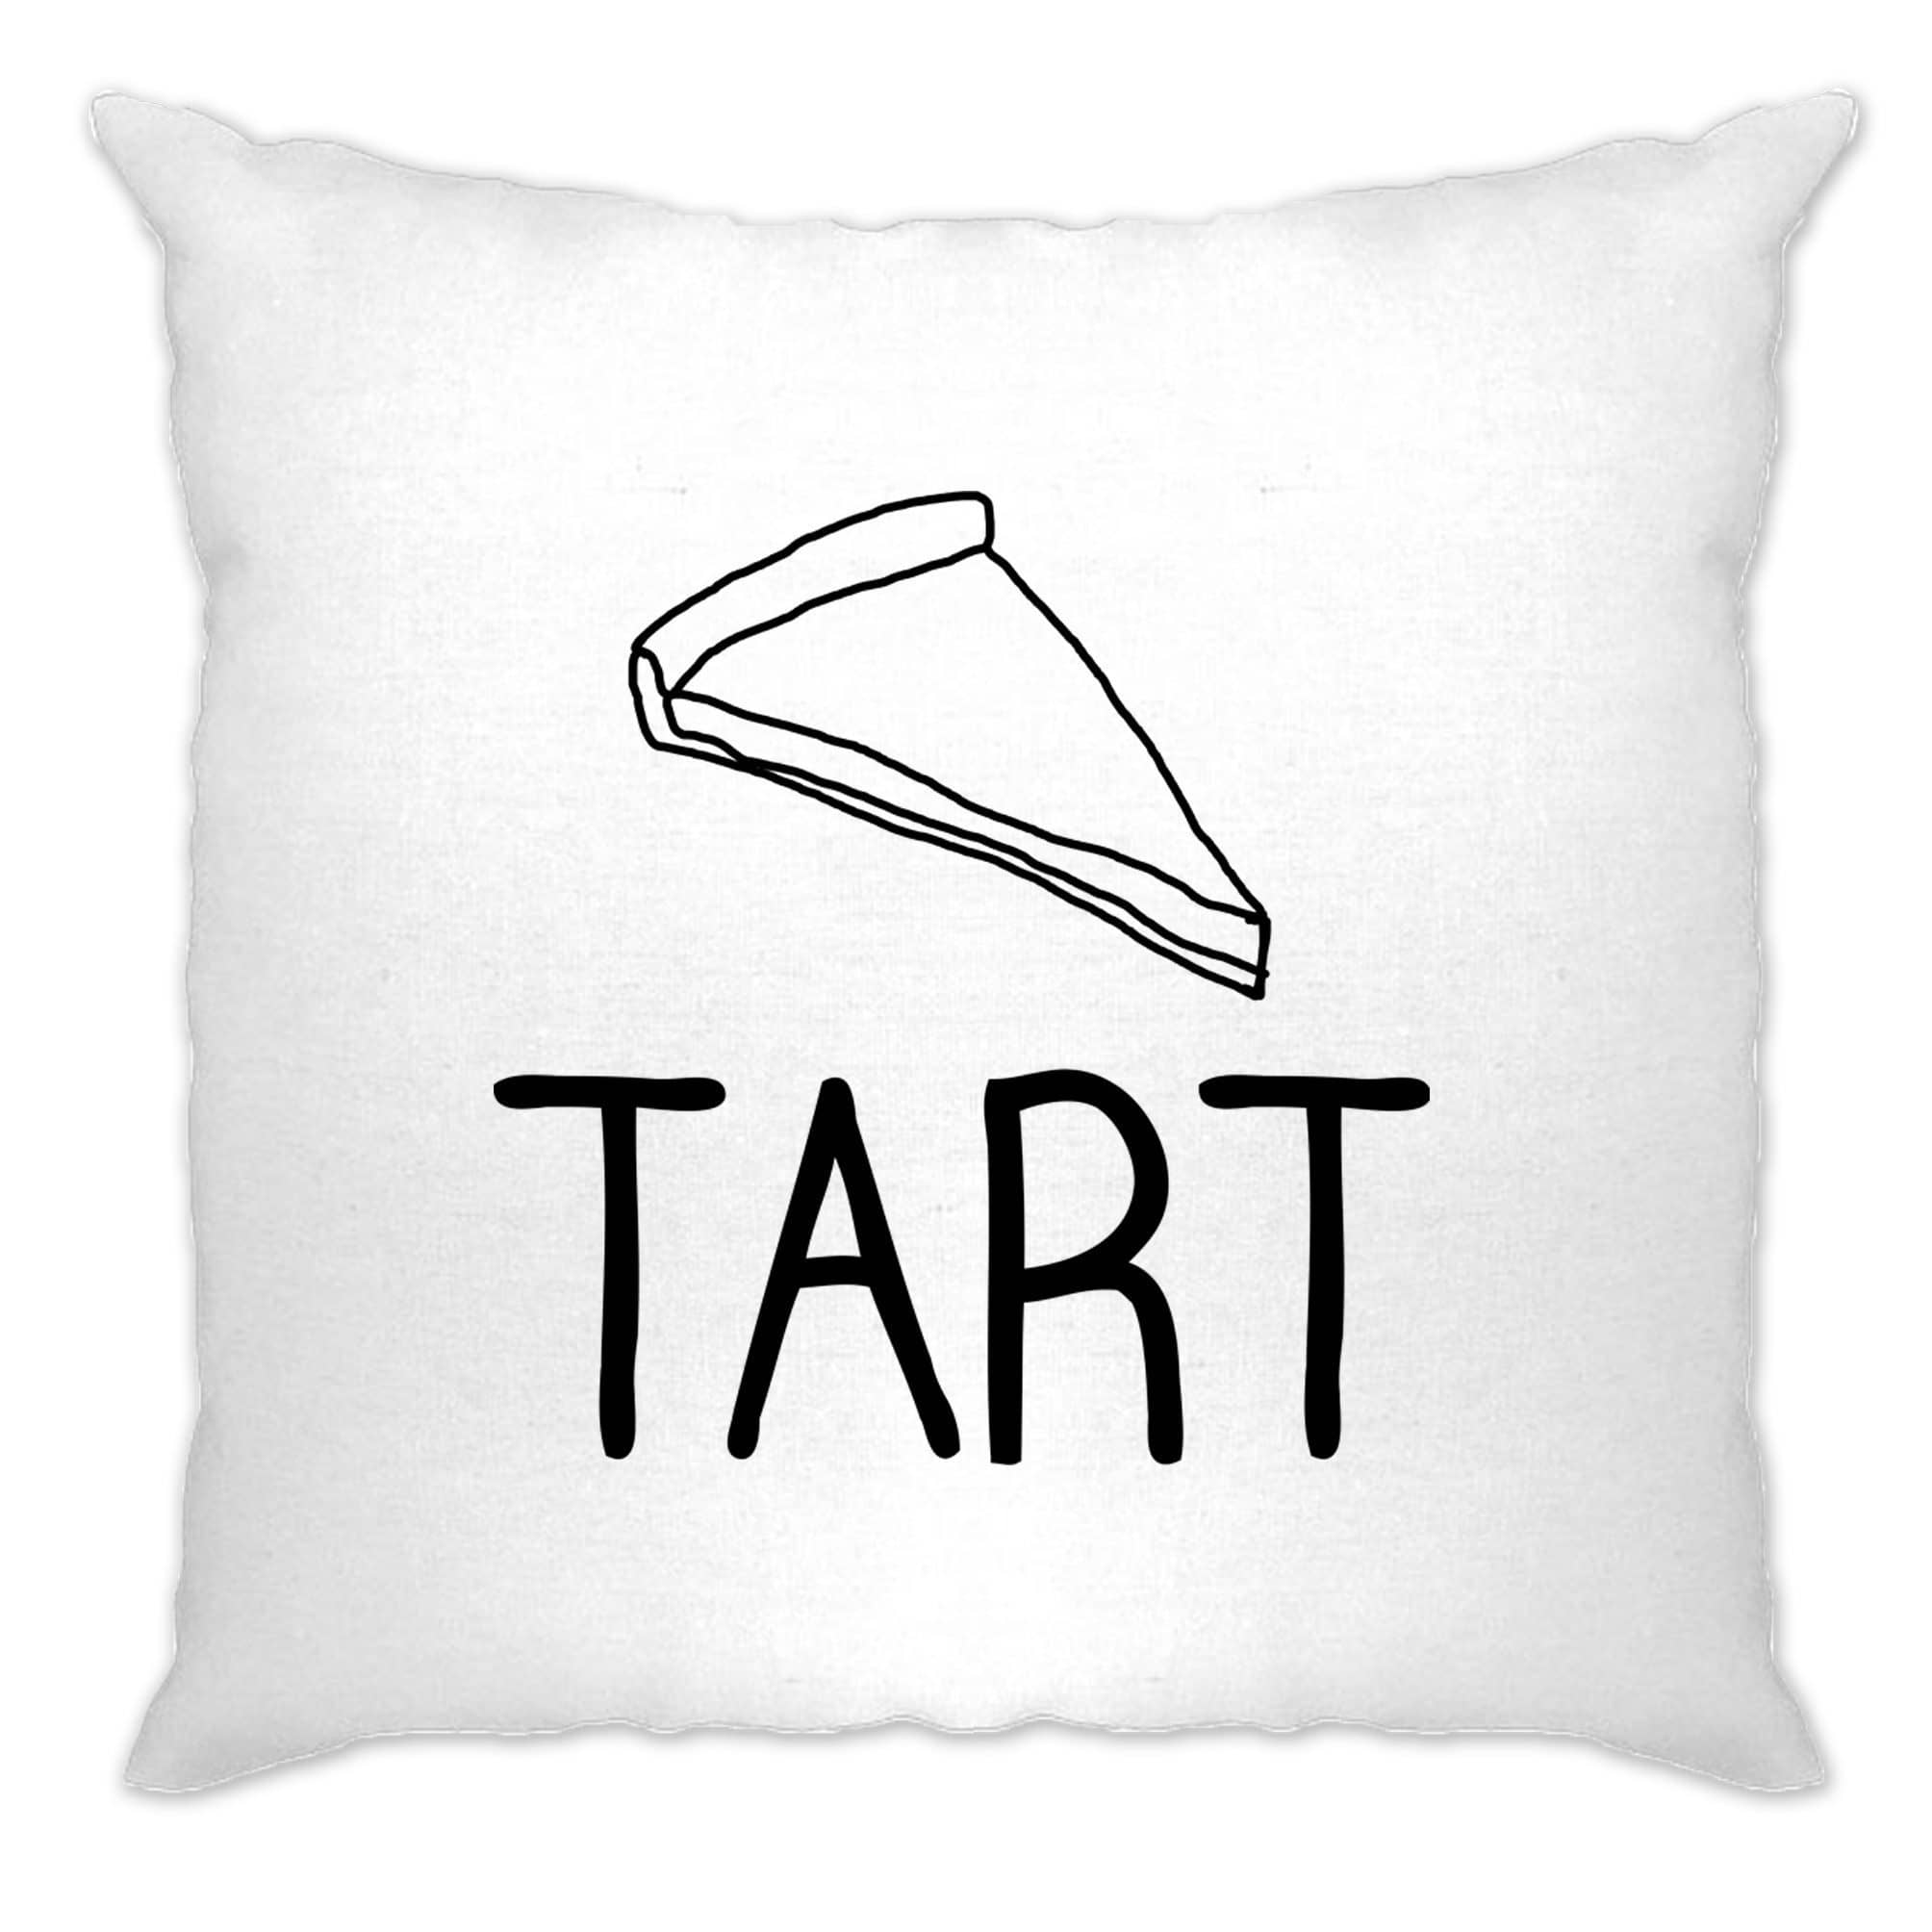 Chef's Cooking Cushion Cover Hand Drawn Tart Logo